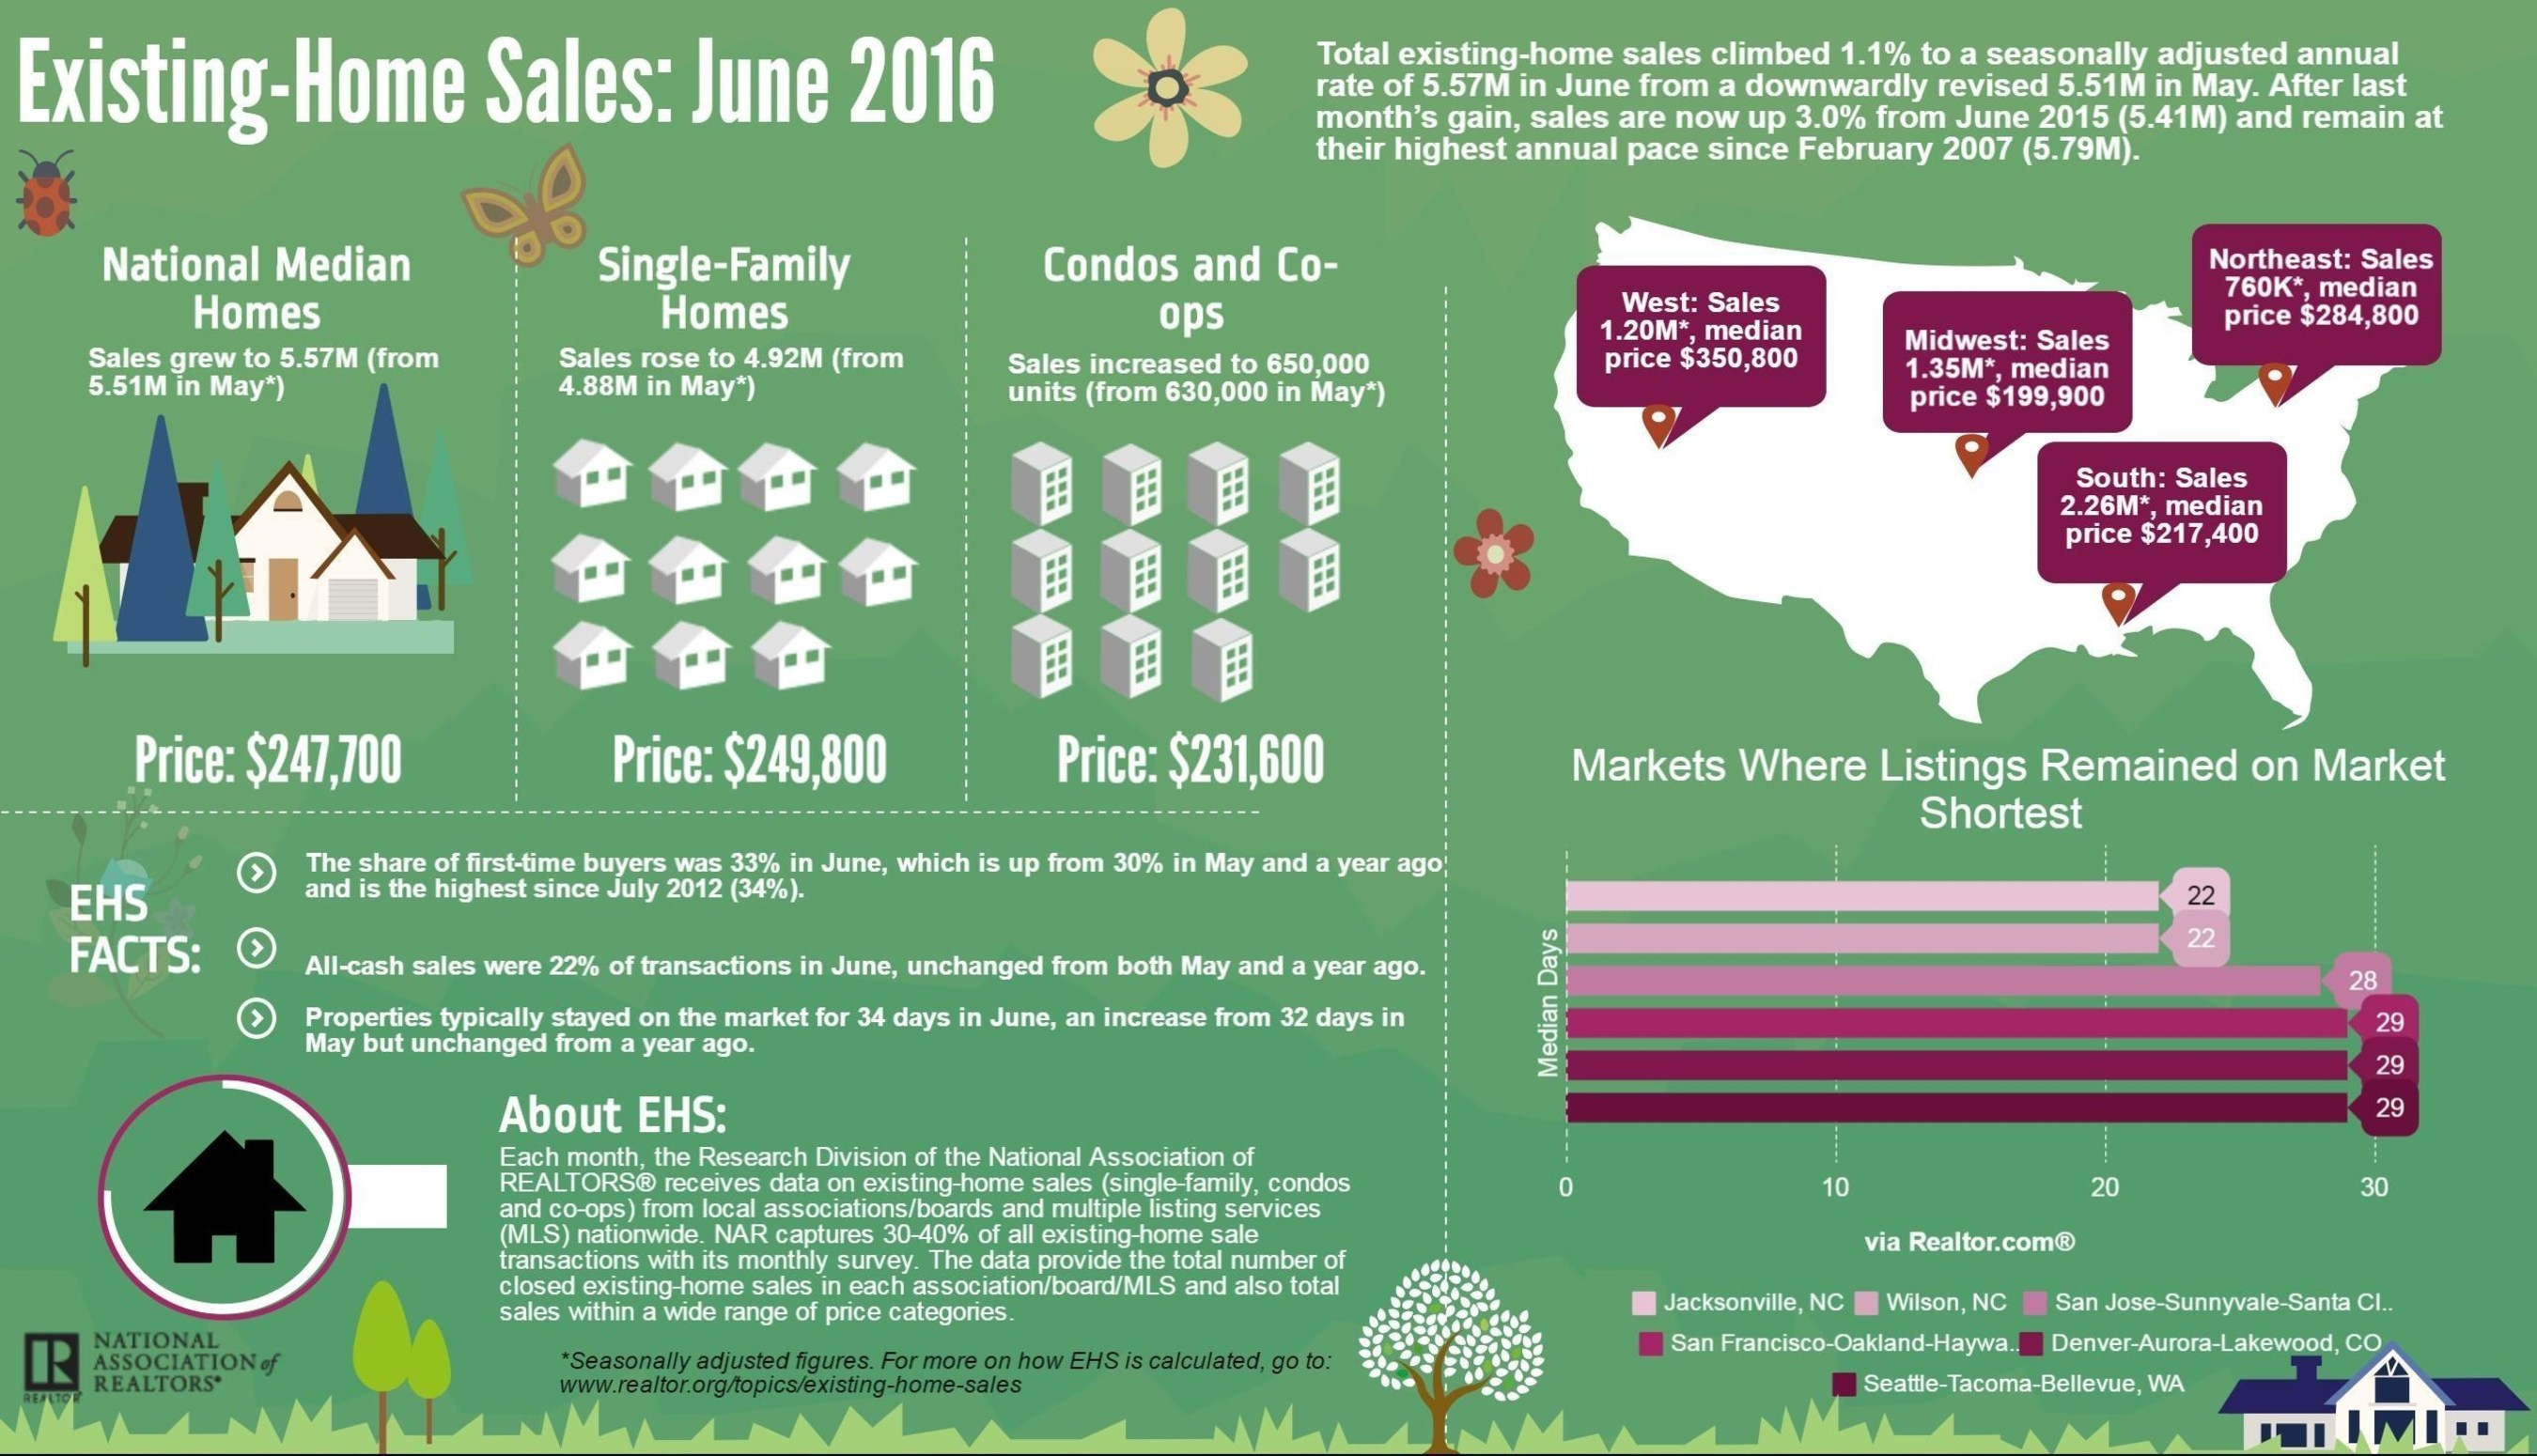 Existing-Home Sales Ascend Again in June